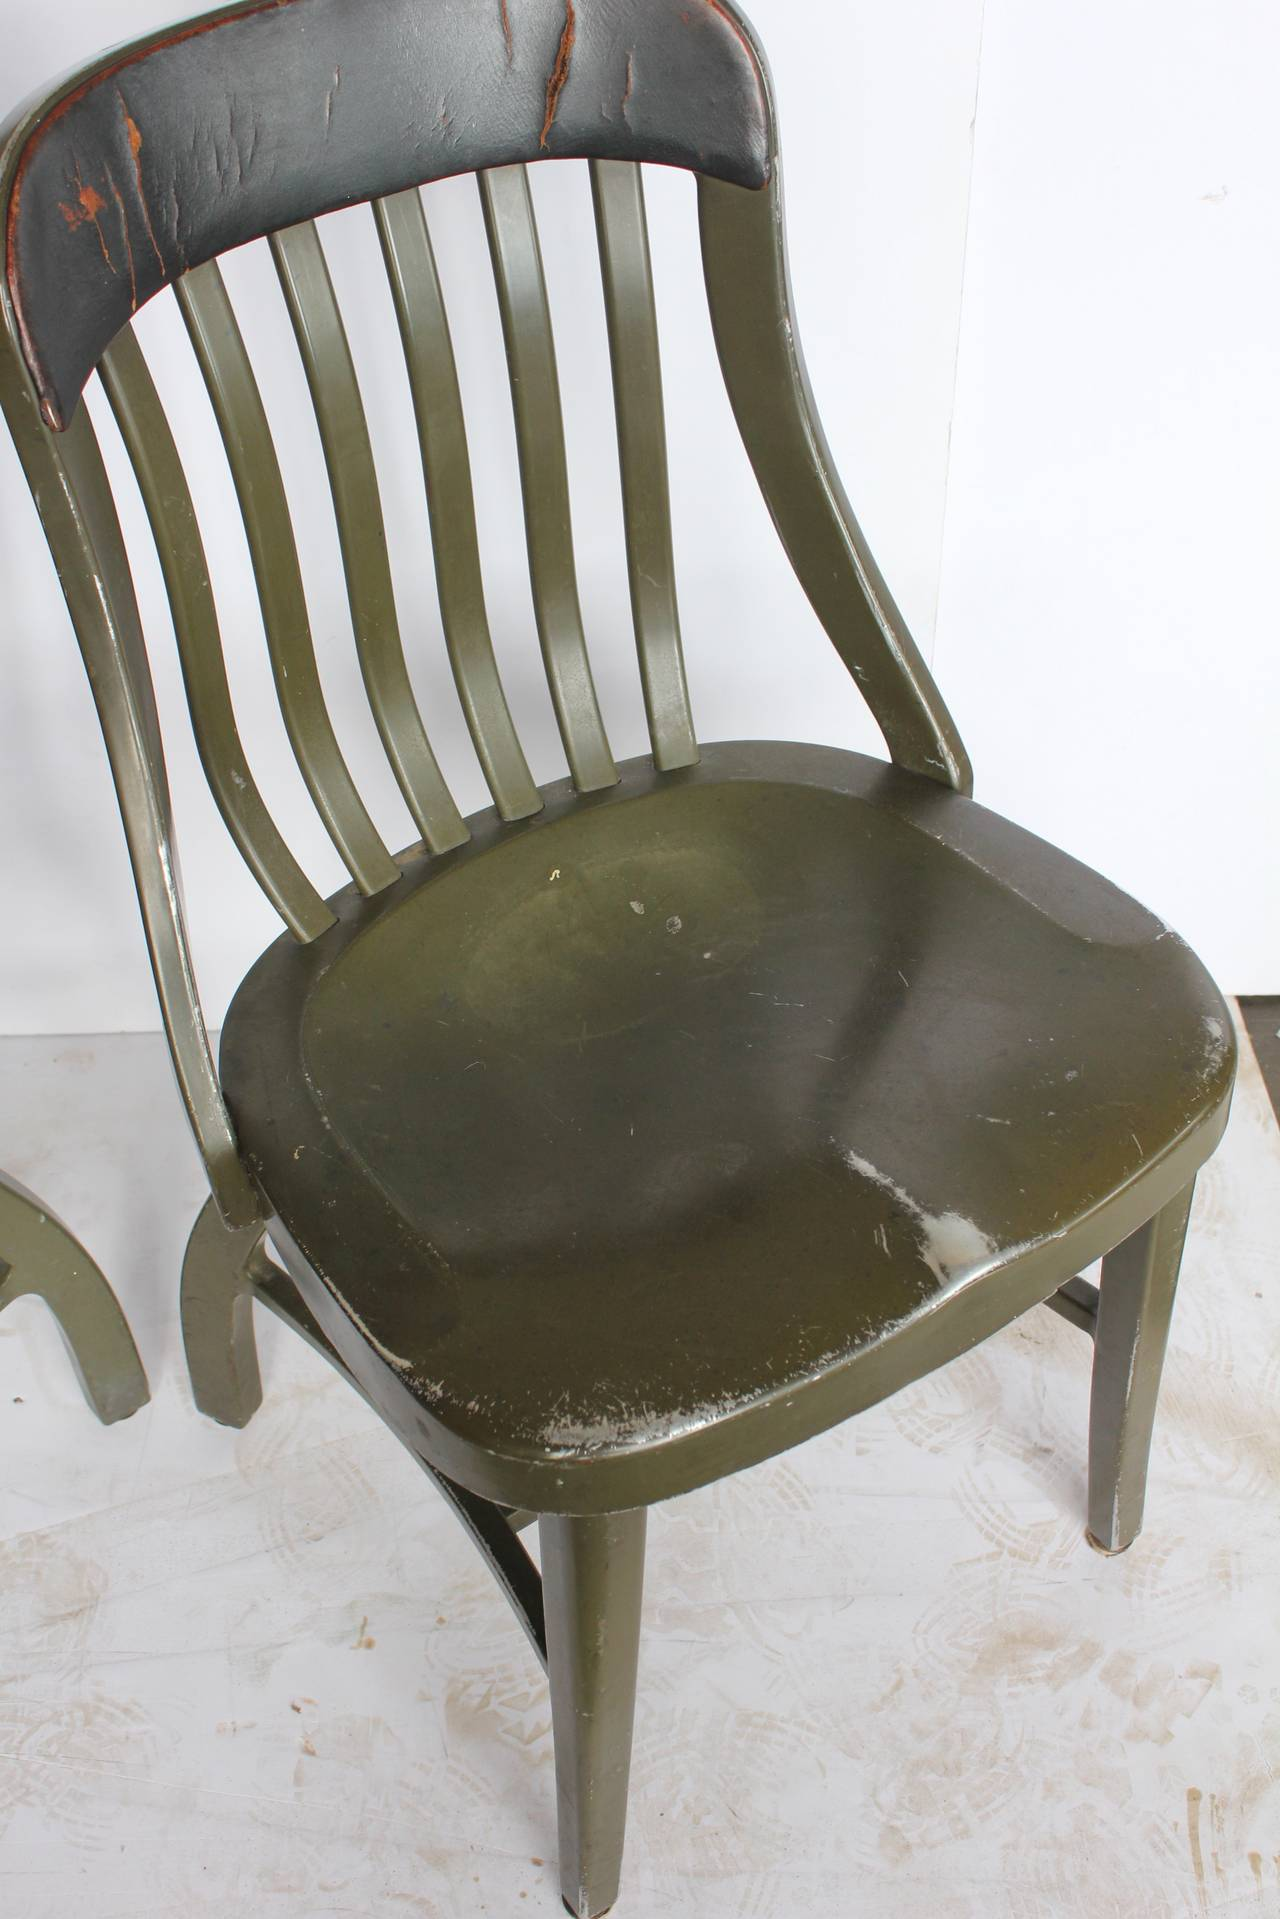 shaw walker chair wooden design and price vintage metal chairs by at 1stdibs